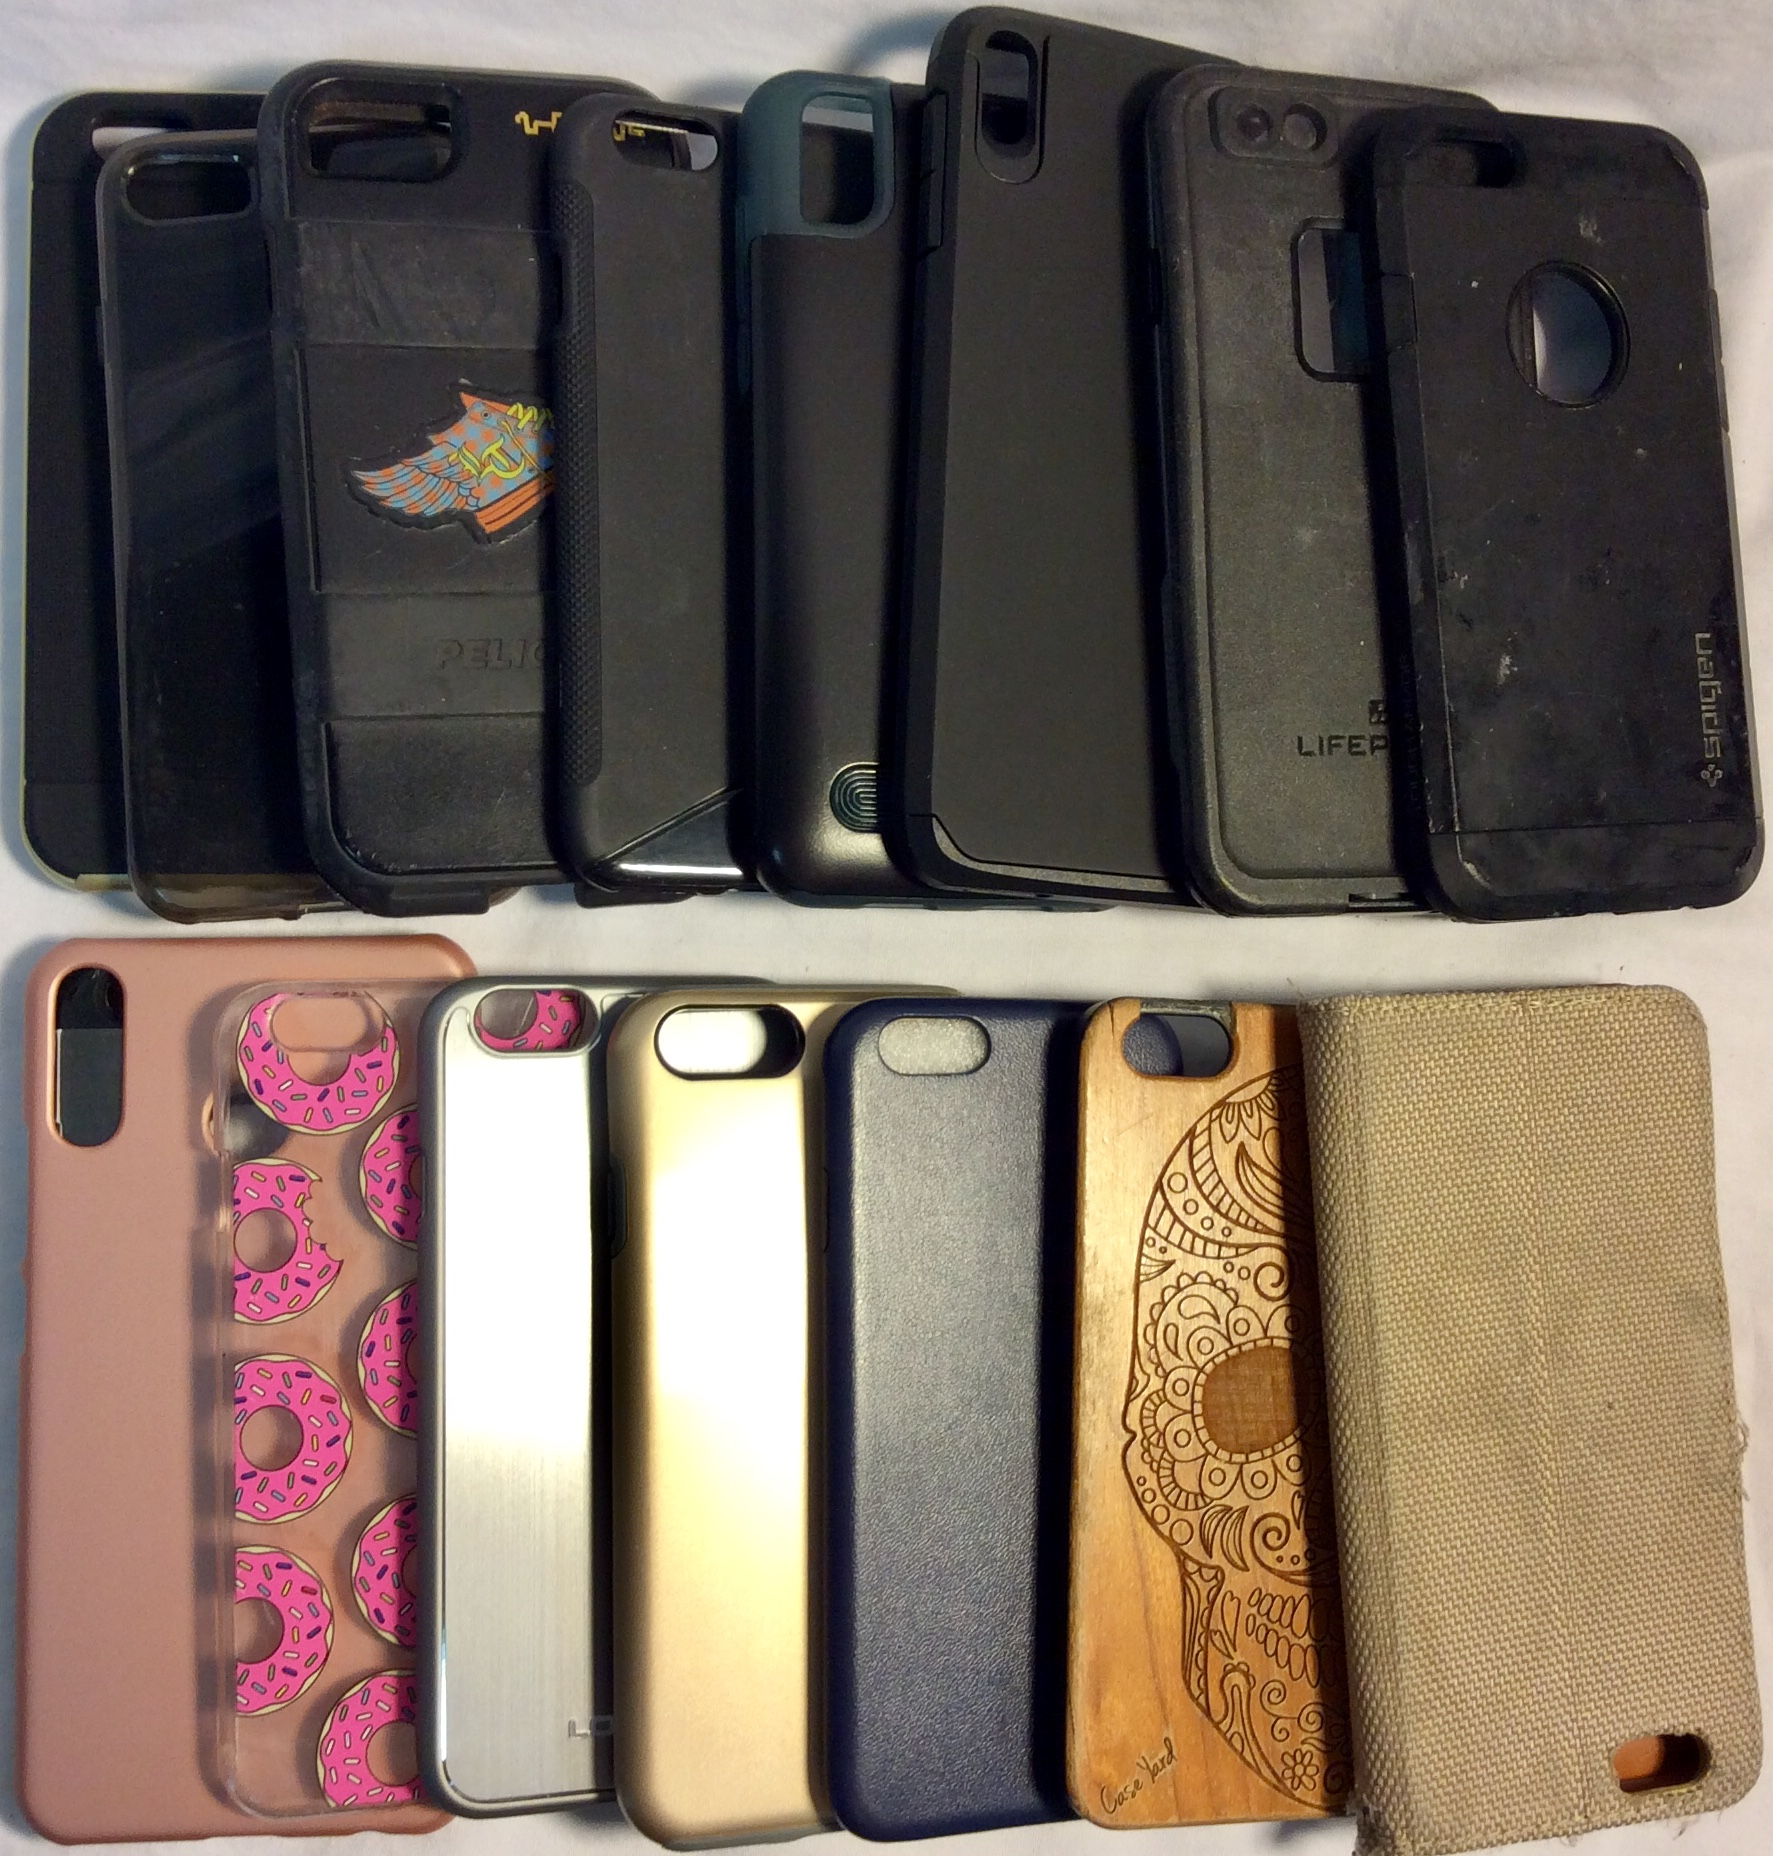 Assorted iPhone 6,7 and 8 cases